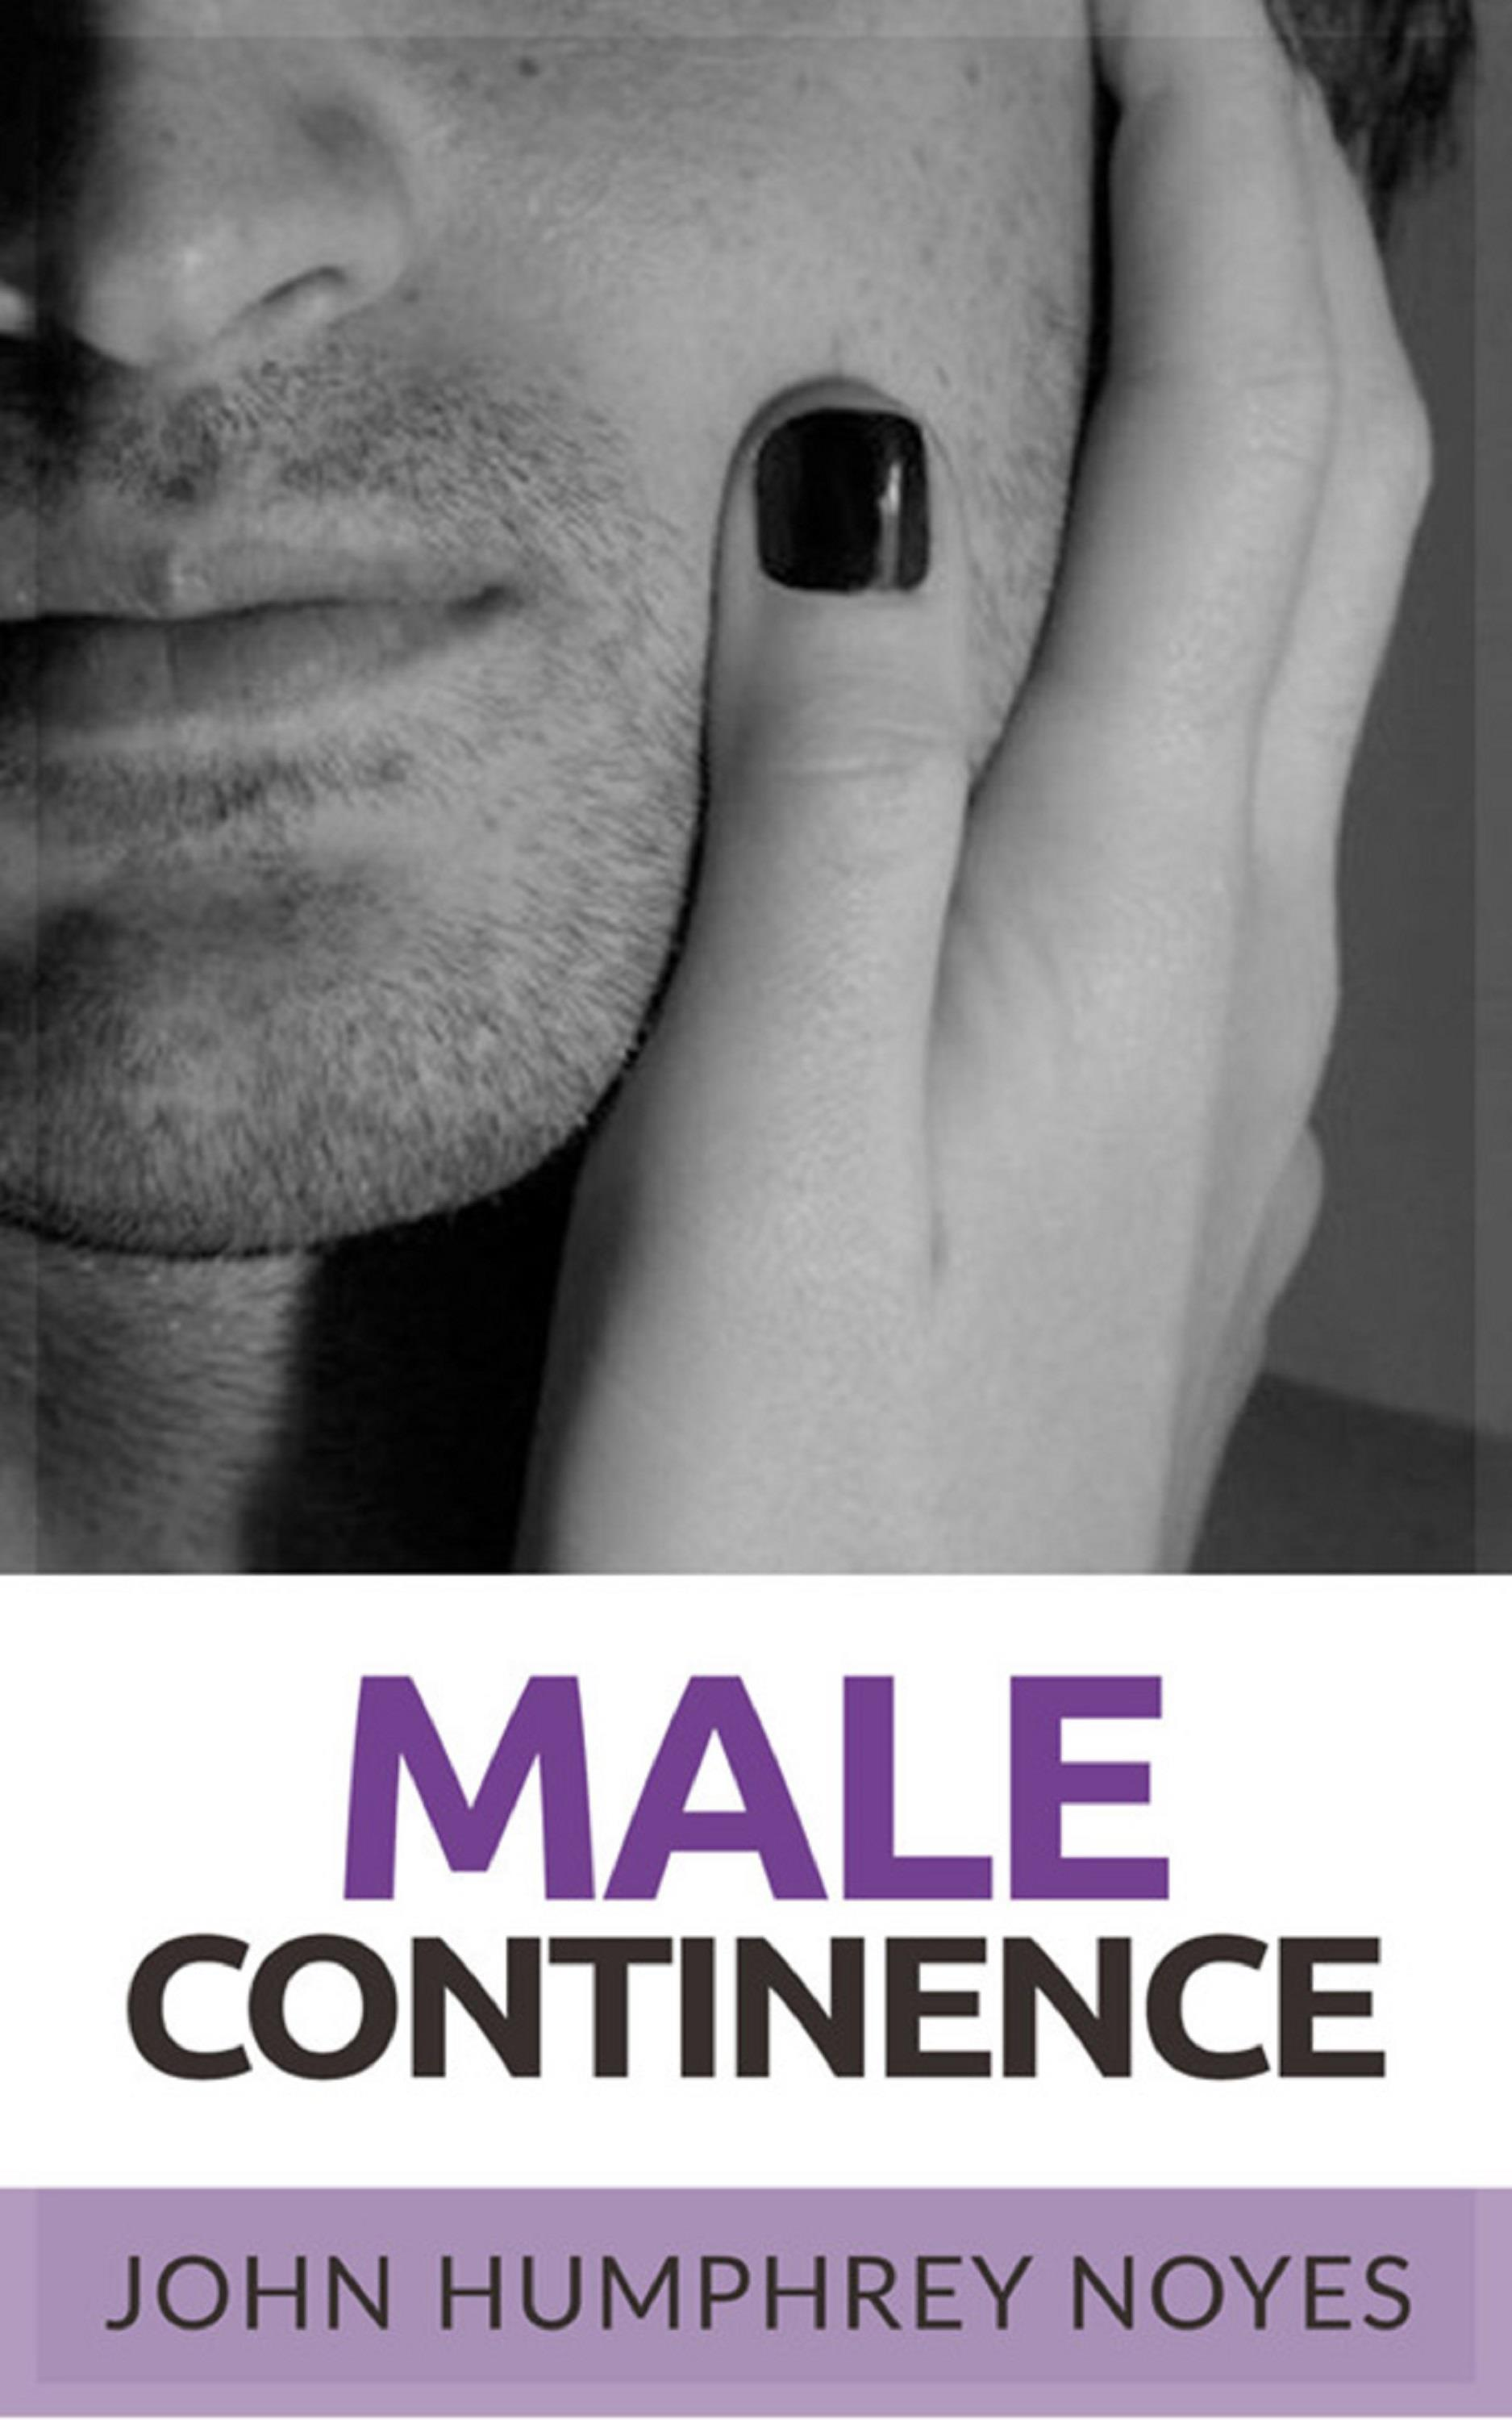 Male Continence